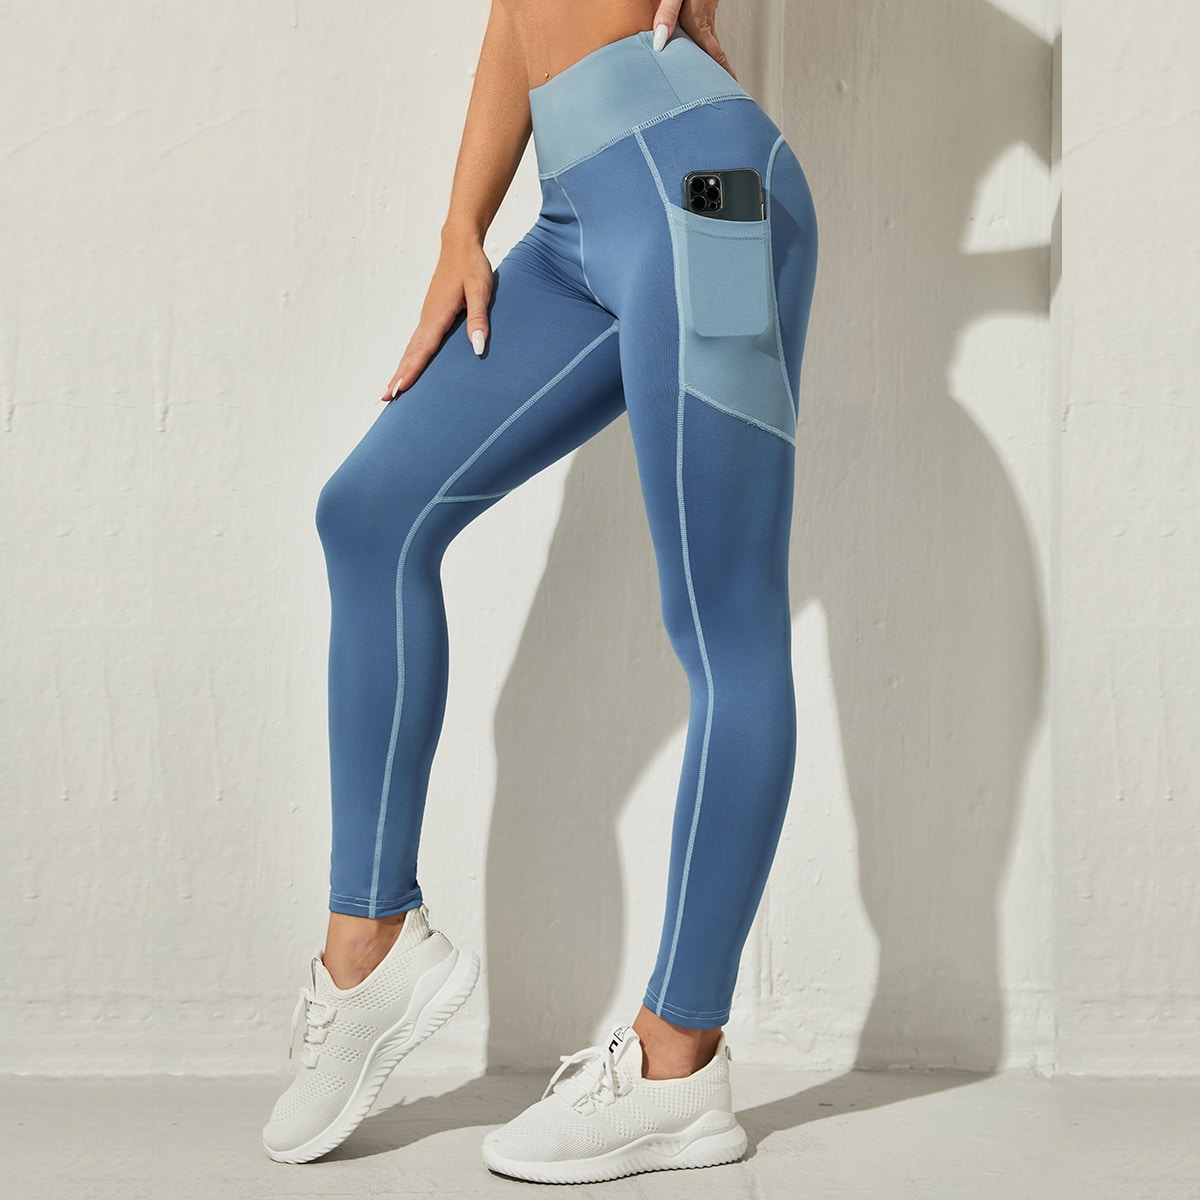 High Stretch Breathable Color Block Sports Leggings, SHEIN  - buy with discount